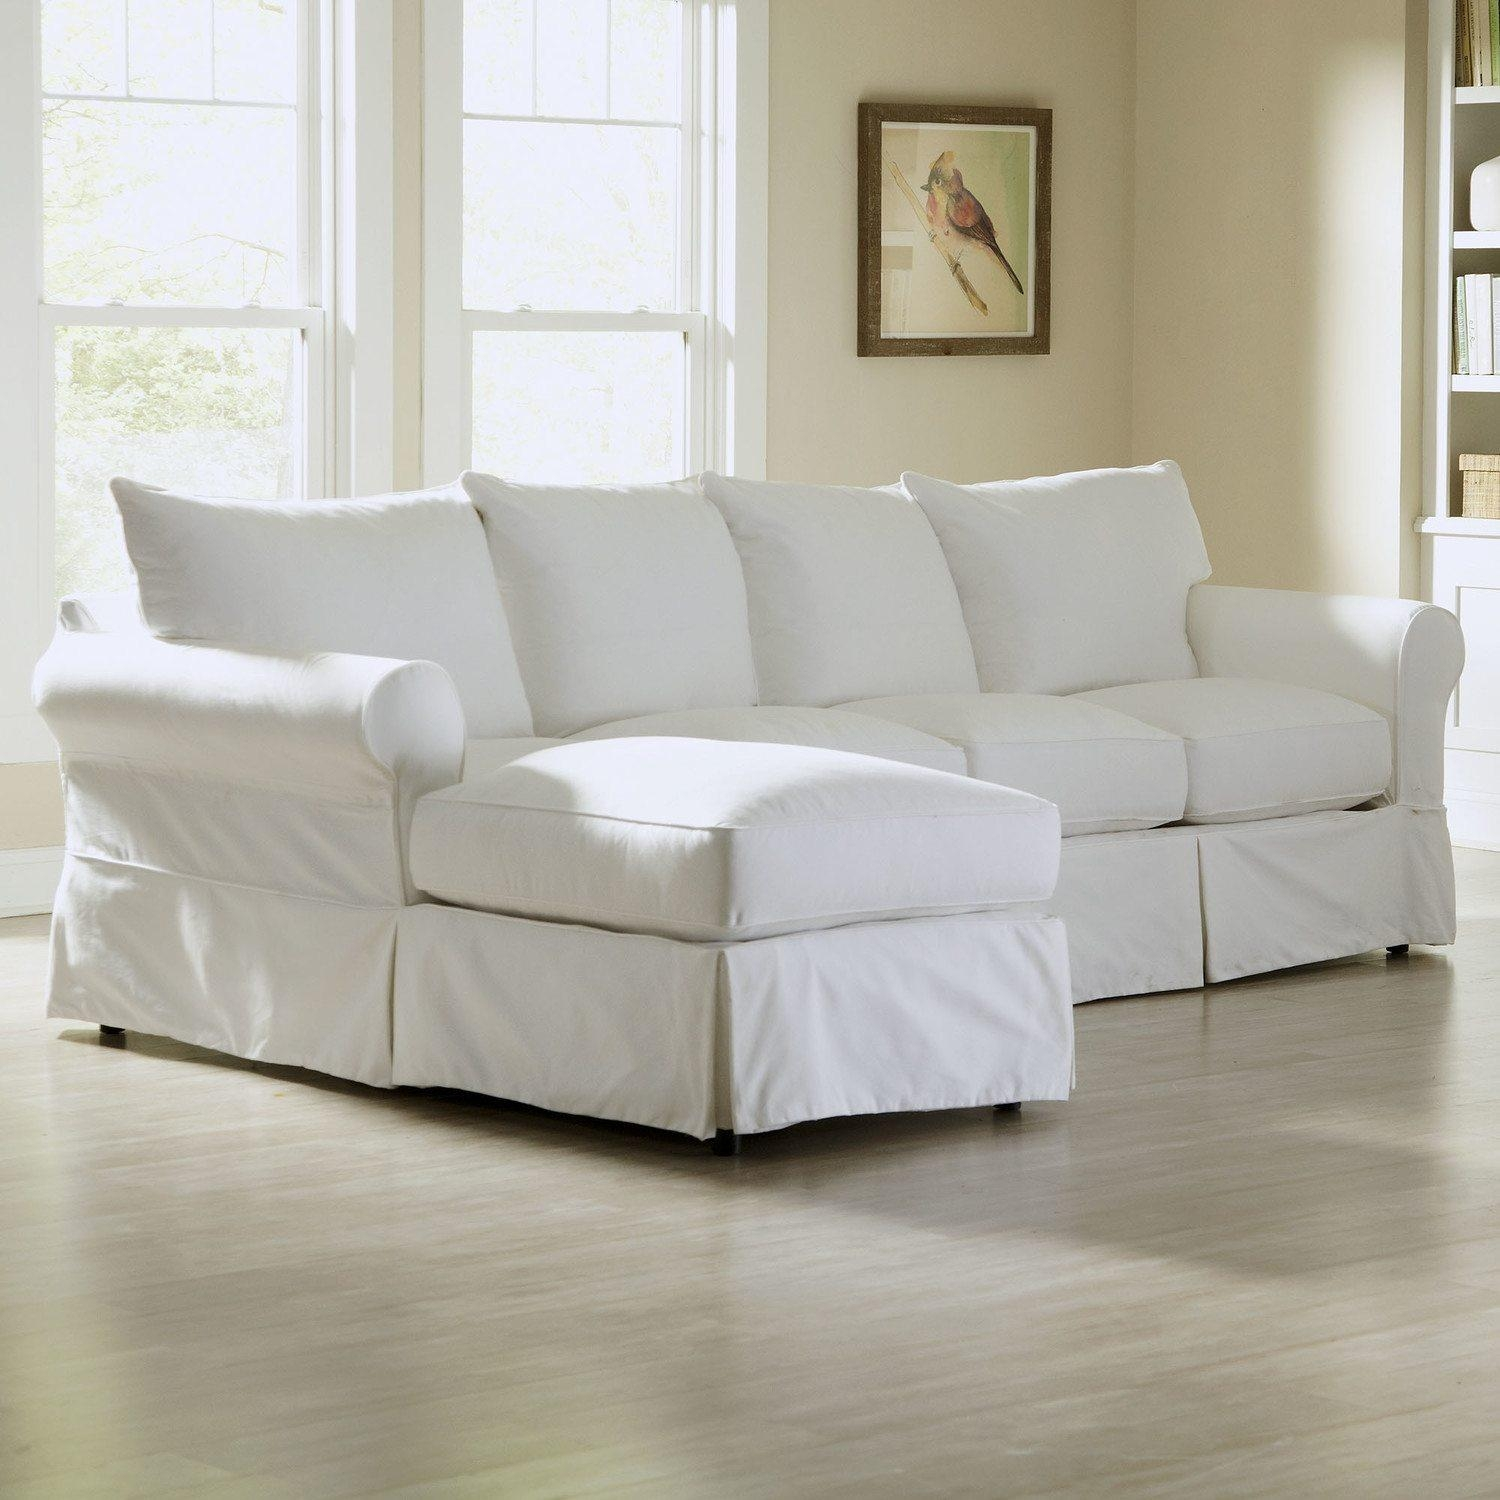 Sofas Center : Cozy Sectional Sofa With Chaise And Ottoman About With Regard To Goose Down Sectional Sofa (View 10 of 15)